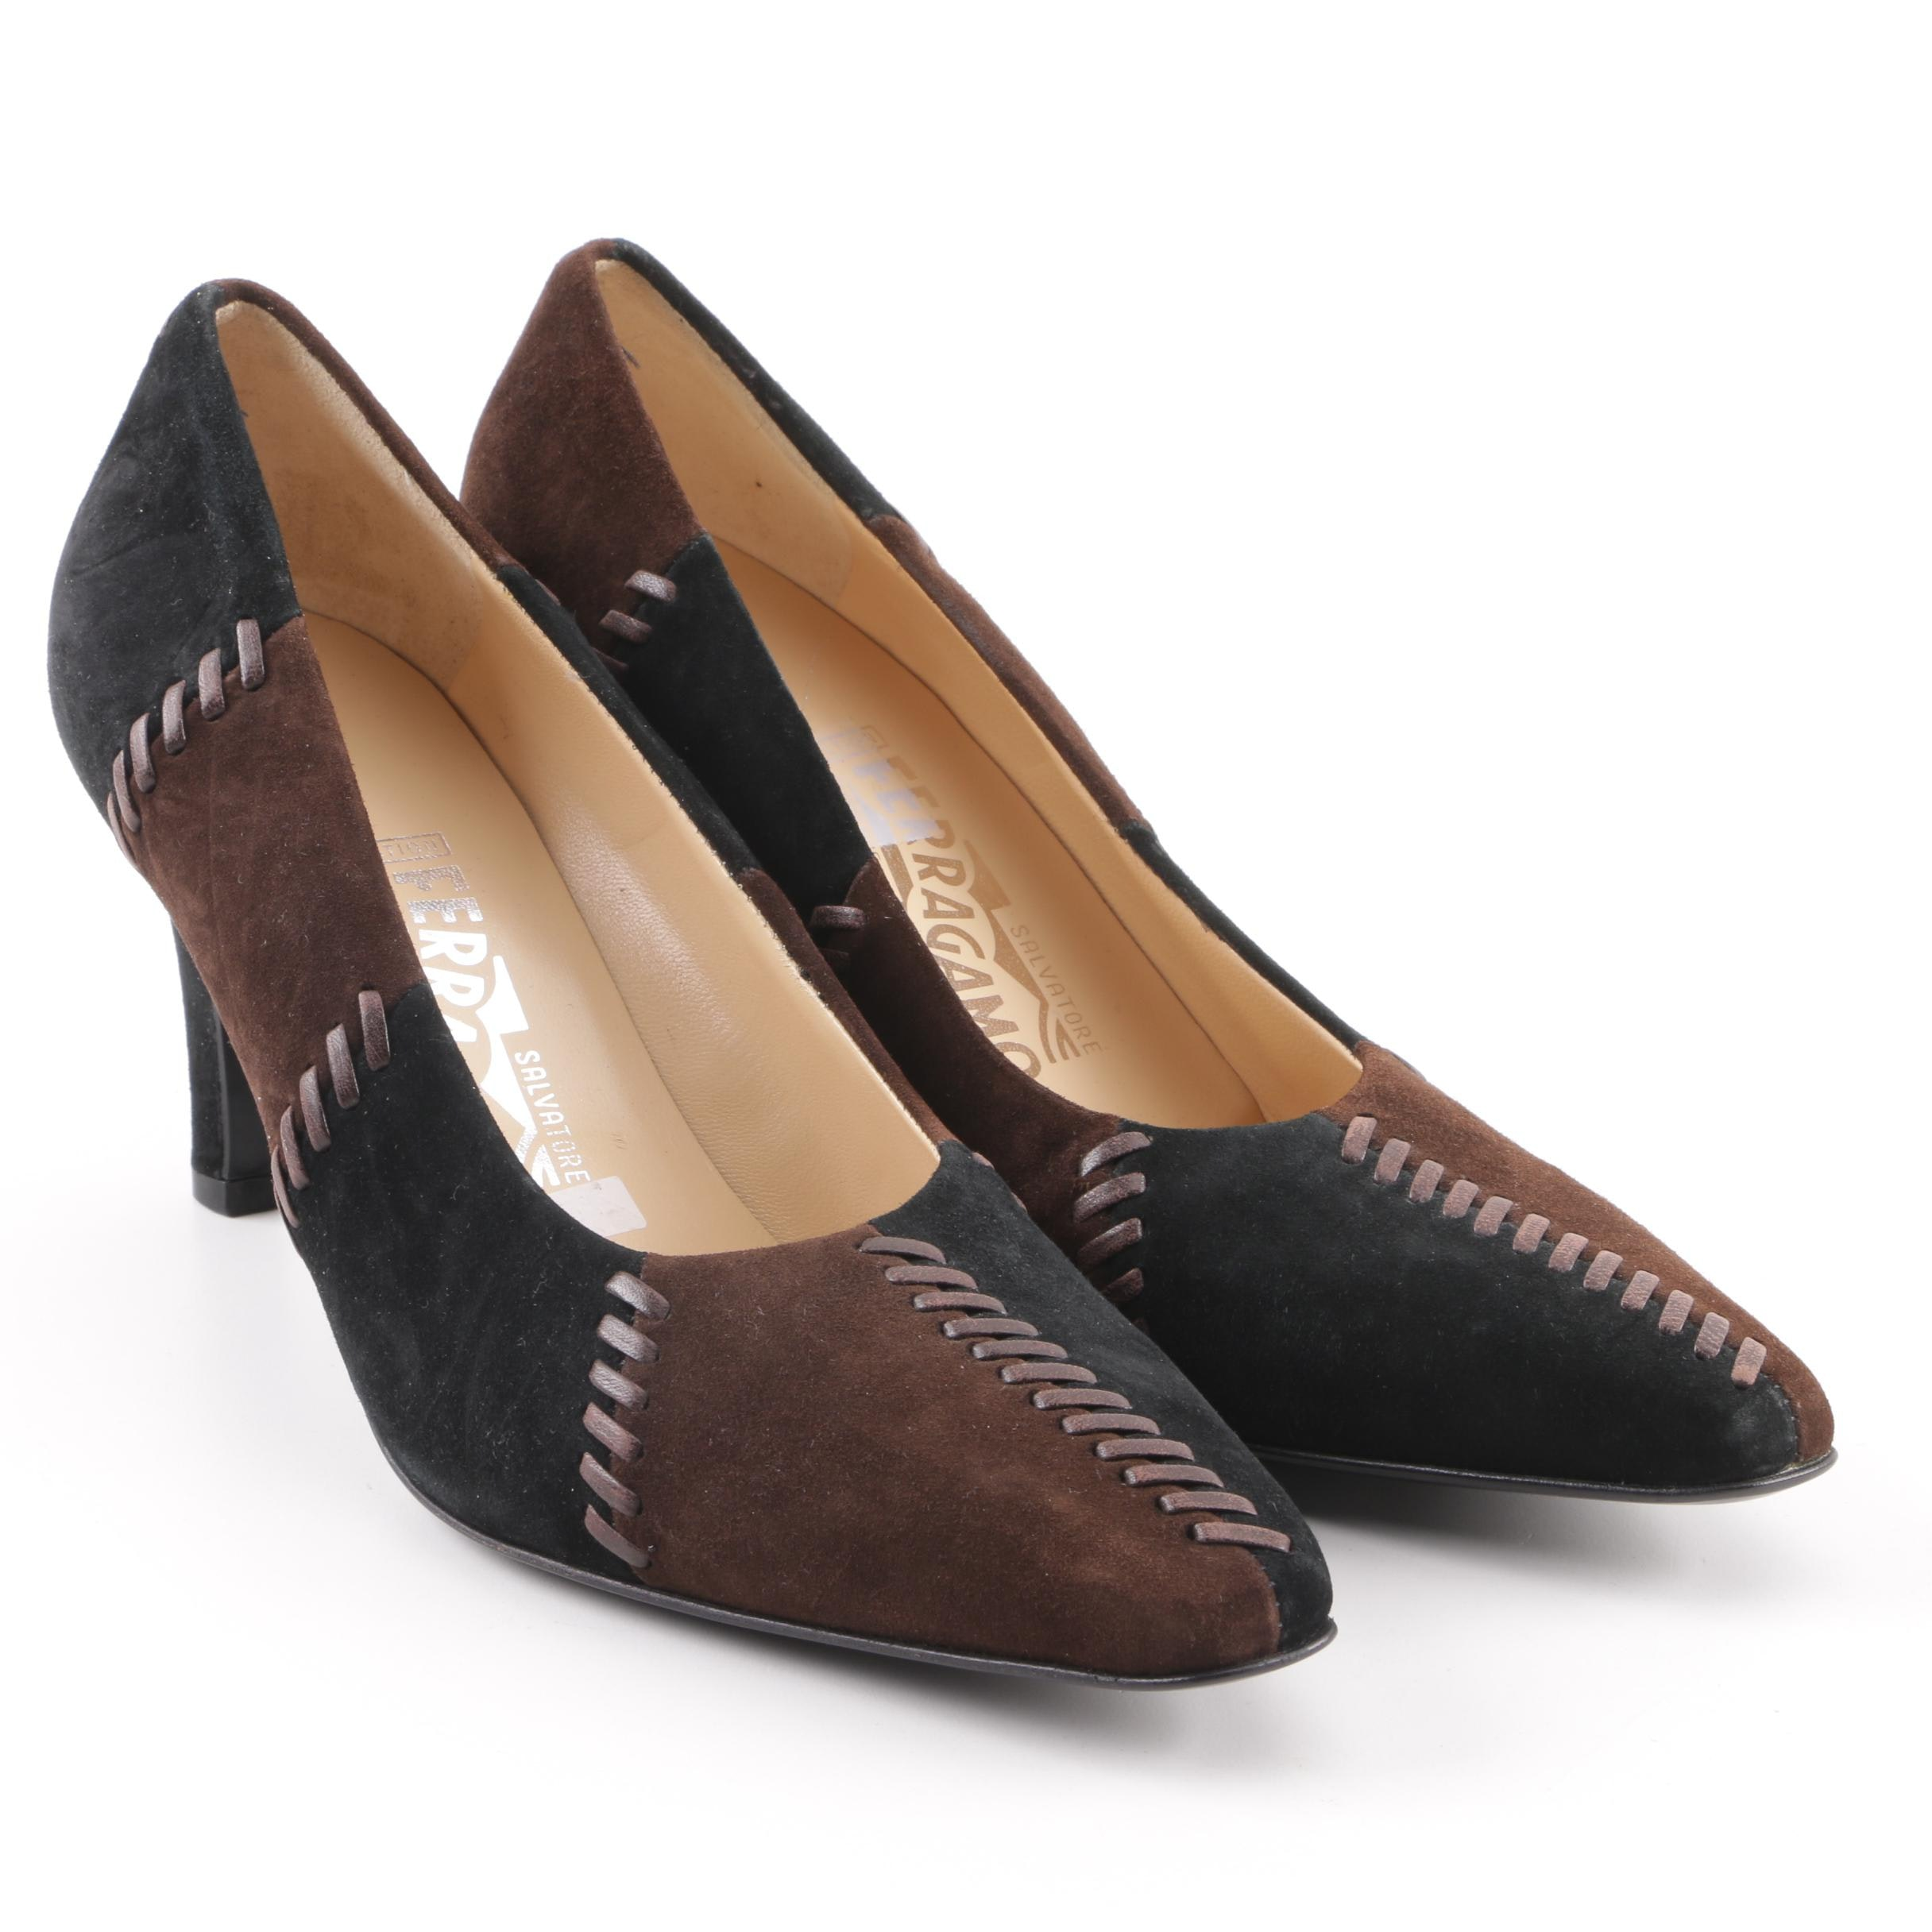 Salvatore Ferragamo Brown and Black Suede High-Heeled Shoes